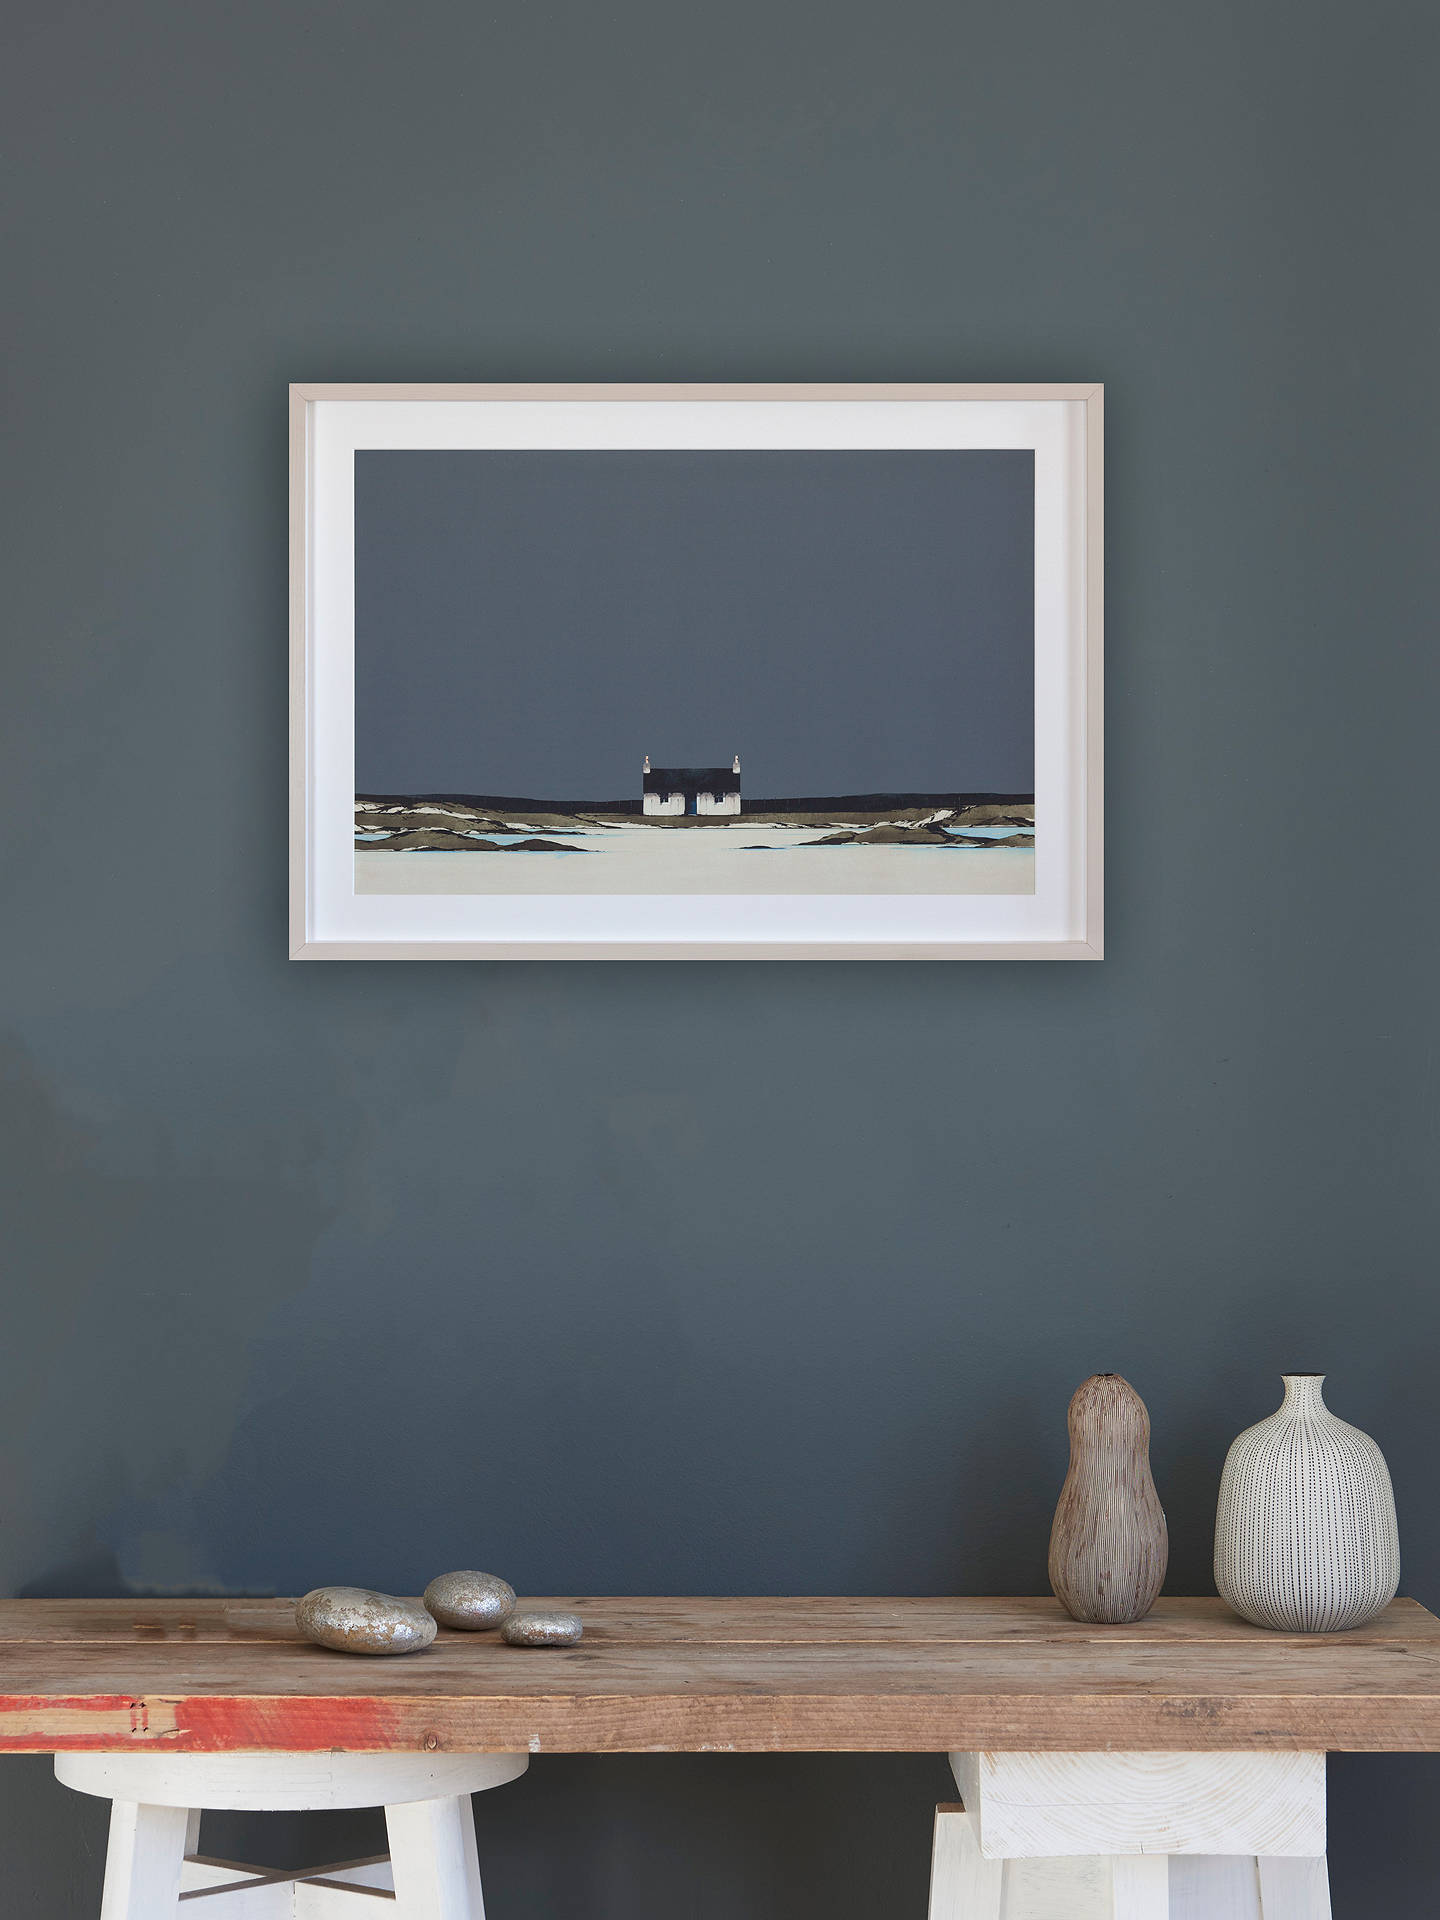 Buy Ron Lawson - Fidden Bay Mull Framed Print & Mount, 55 x 78cm Online at johnlewis.com